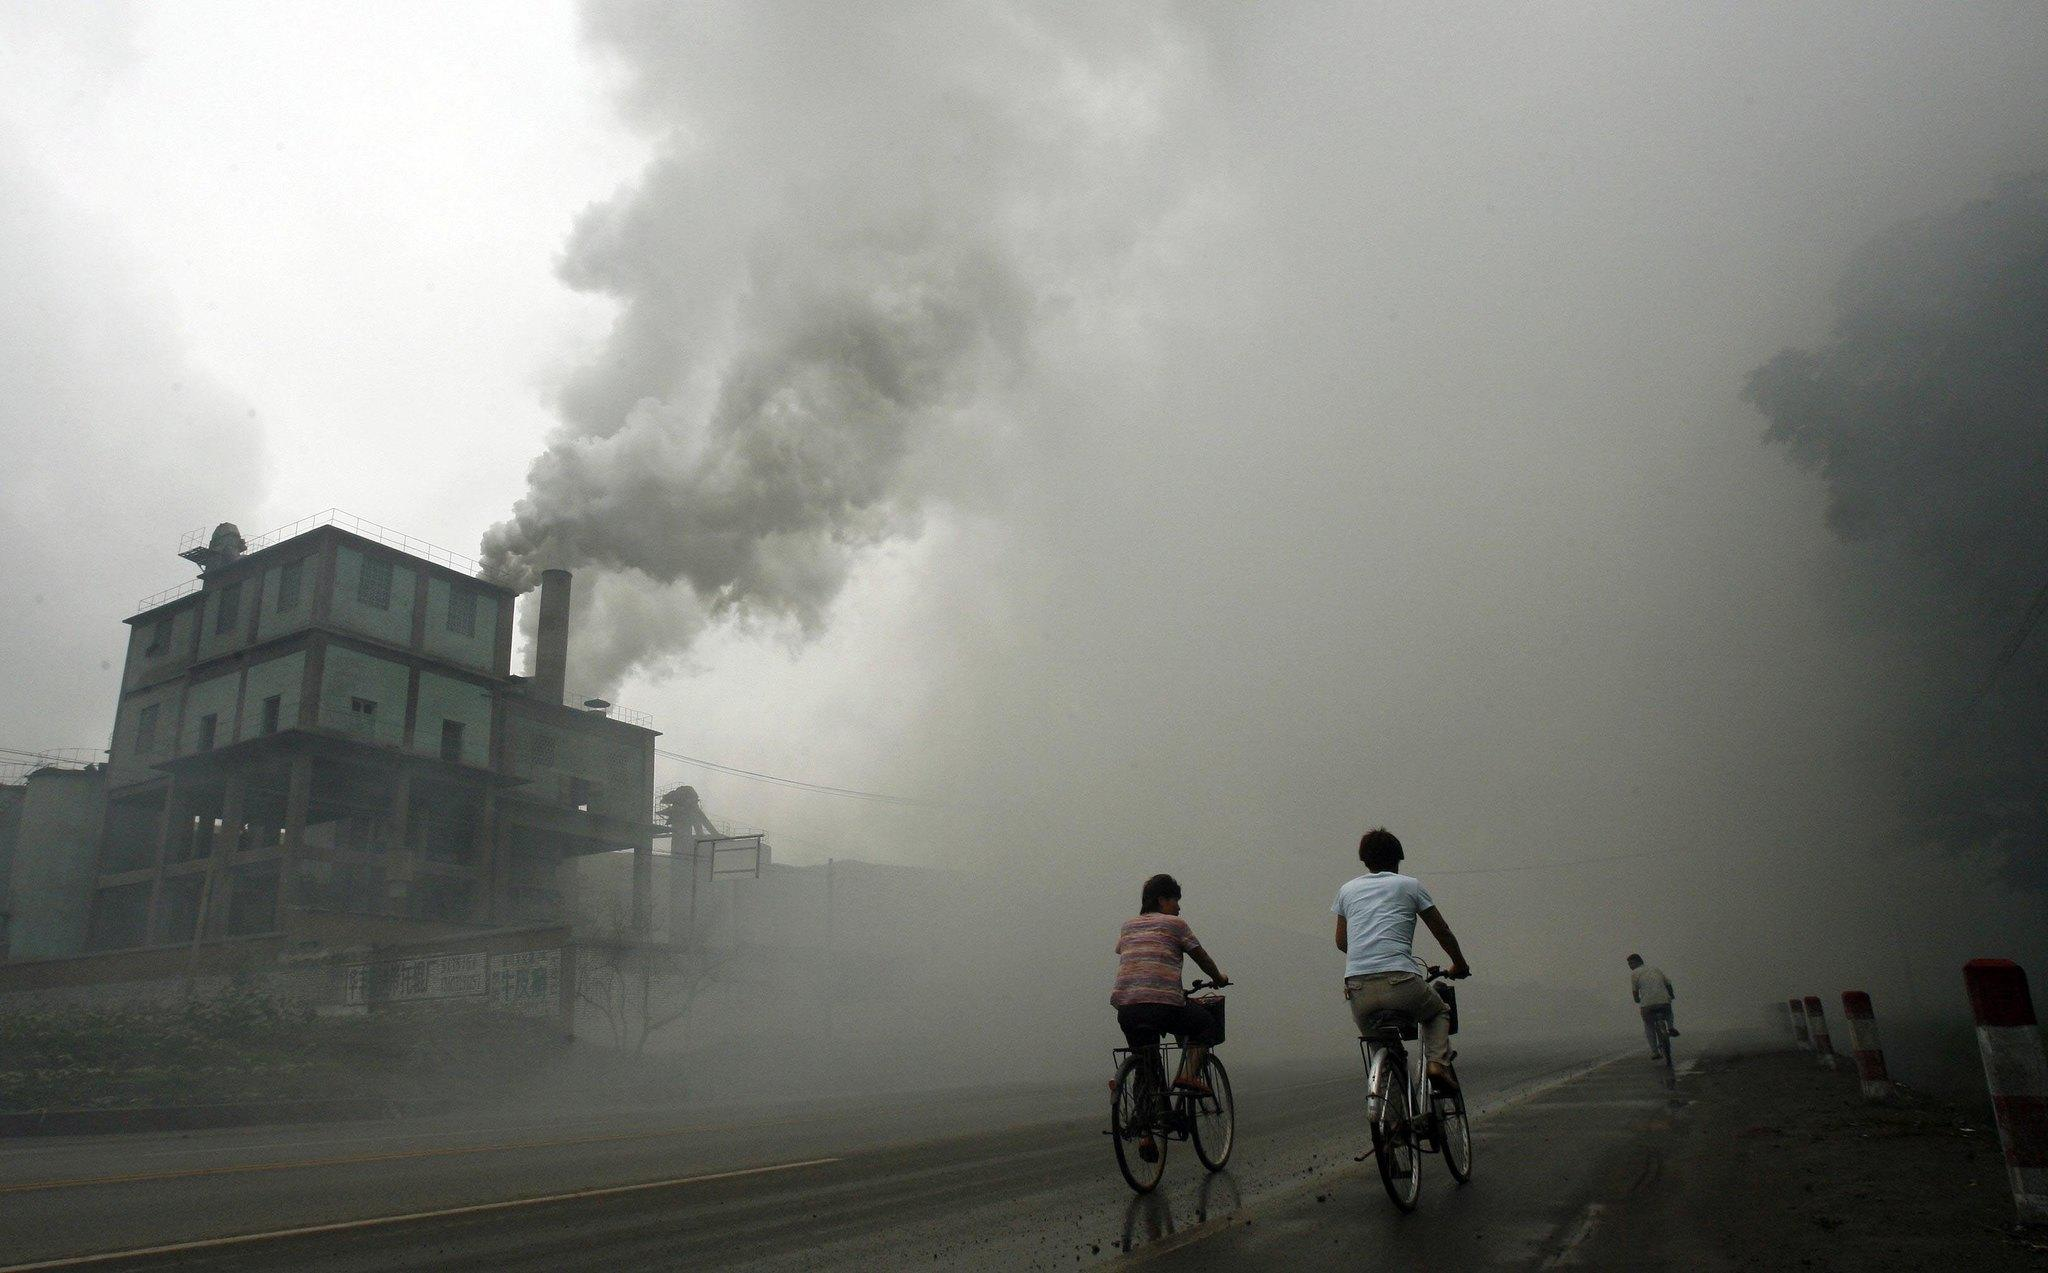 A study found that China's export industry is responsible for pollution that blows across the Pacific Ocean and contributes to smog in the United States.